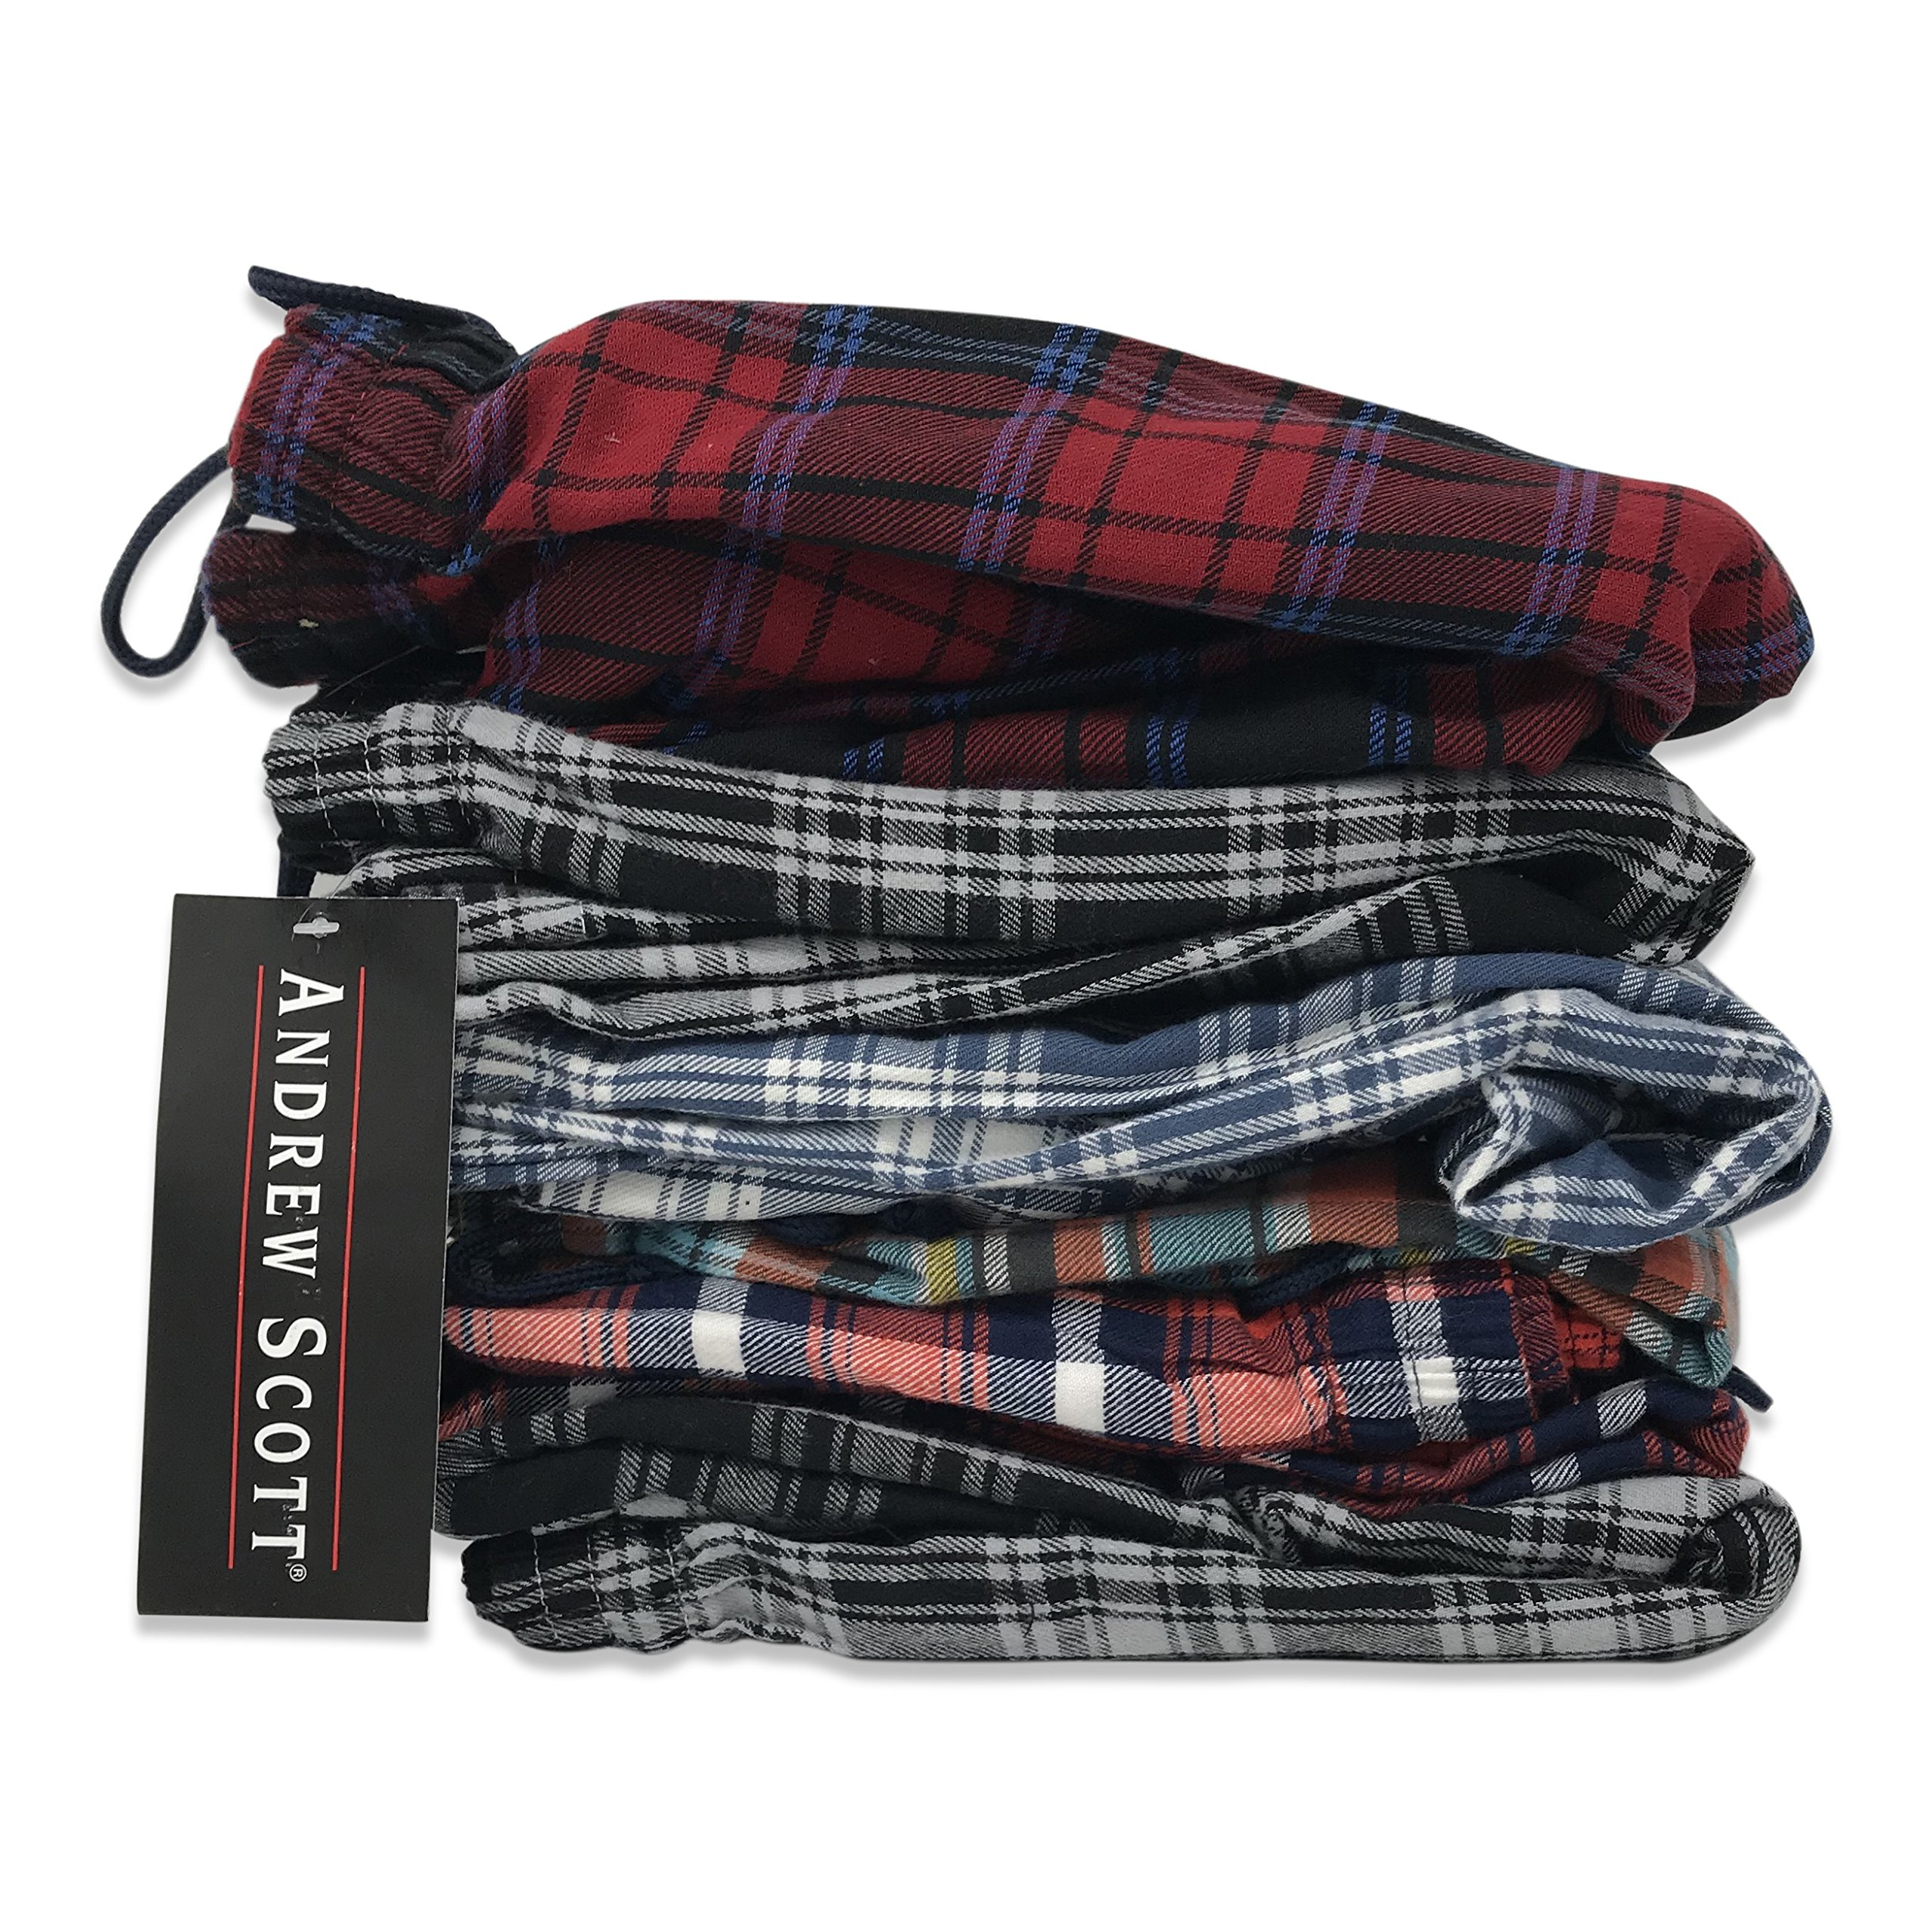 Andrew Scott Men's 3 Pack Cotton Flannel Fleece Brush Pajama Sleep & Lounge Pants (XL/40-42, 3 Pack - Classic Flannel Assorted Plaids) by Andrew Scott (Image #3)